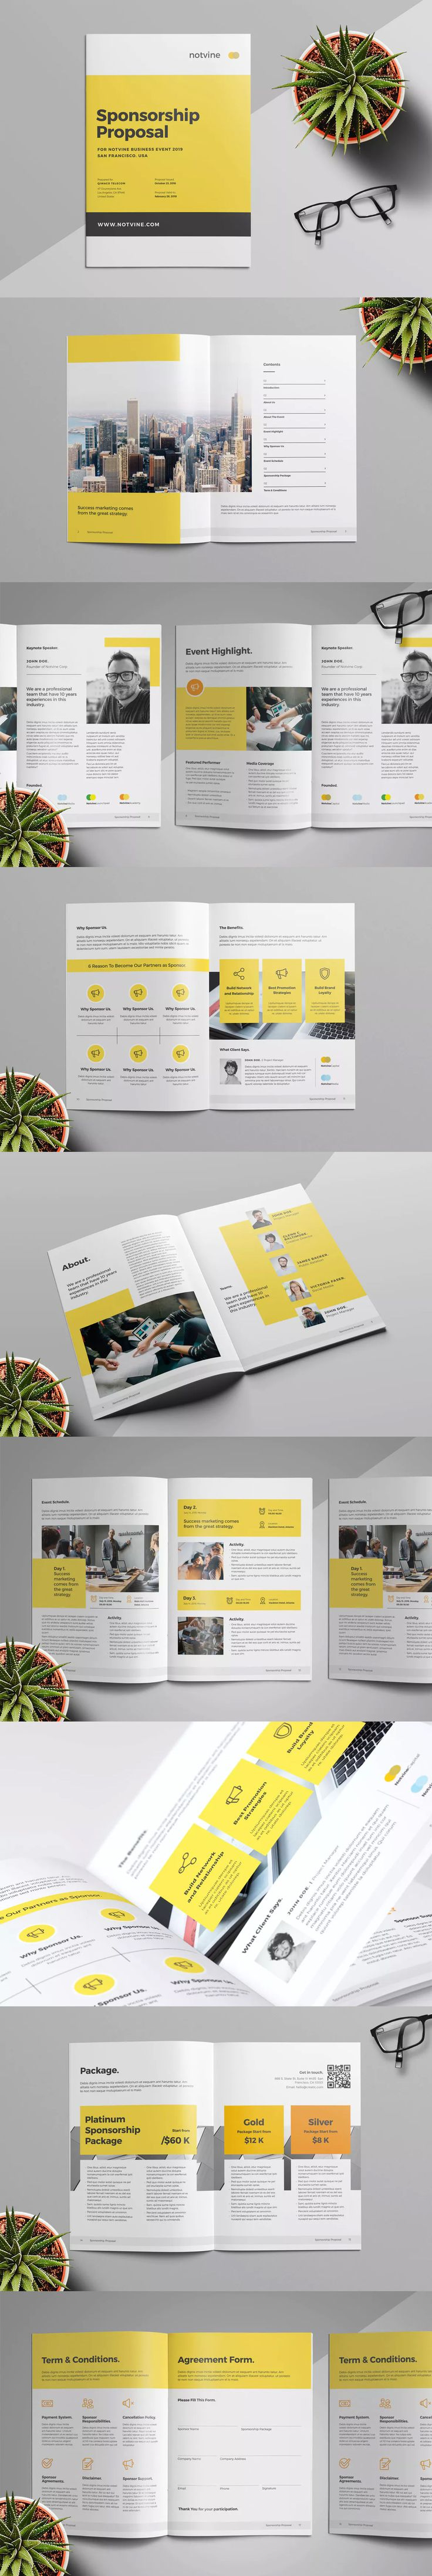 Event Proposal Template InDesign INDD A4